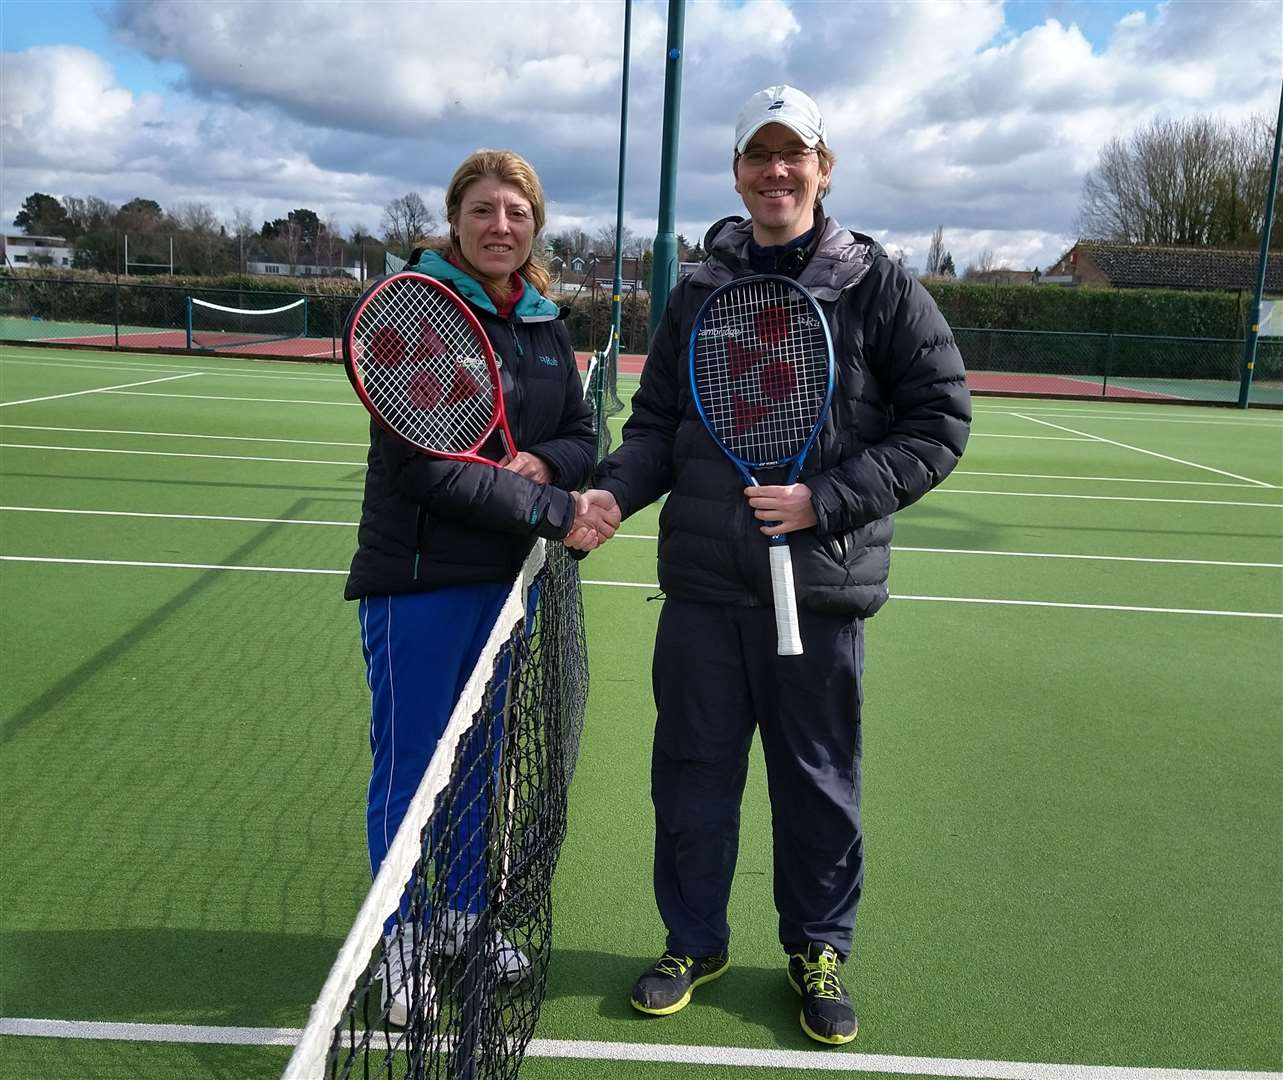 Teresa Catlin, left, takes the reins from James Mills at Cambridge Lawn Tennis Club